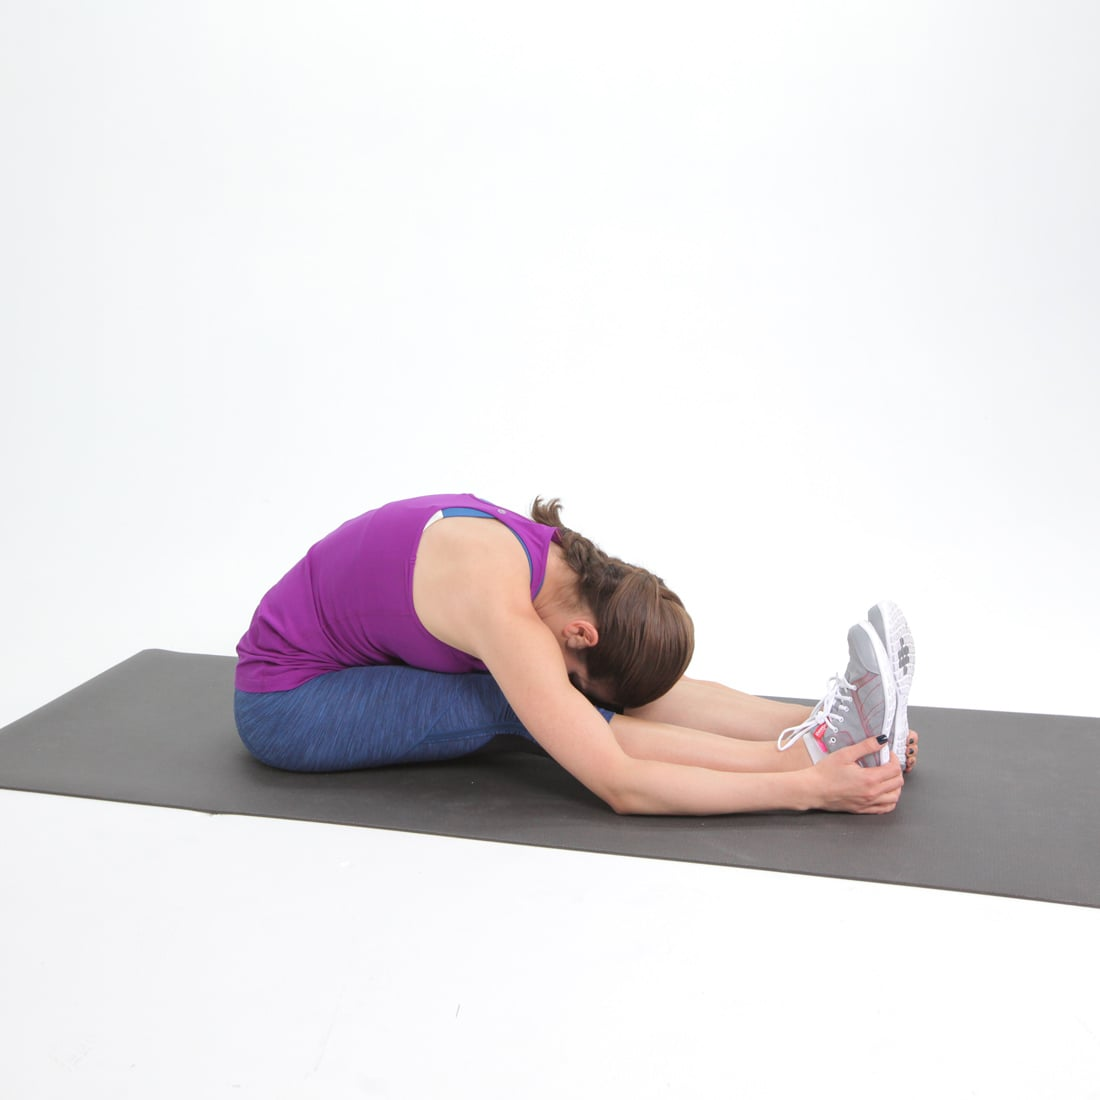 Forward Bend With Rounded Back